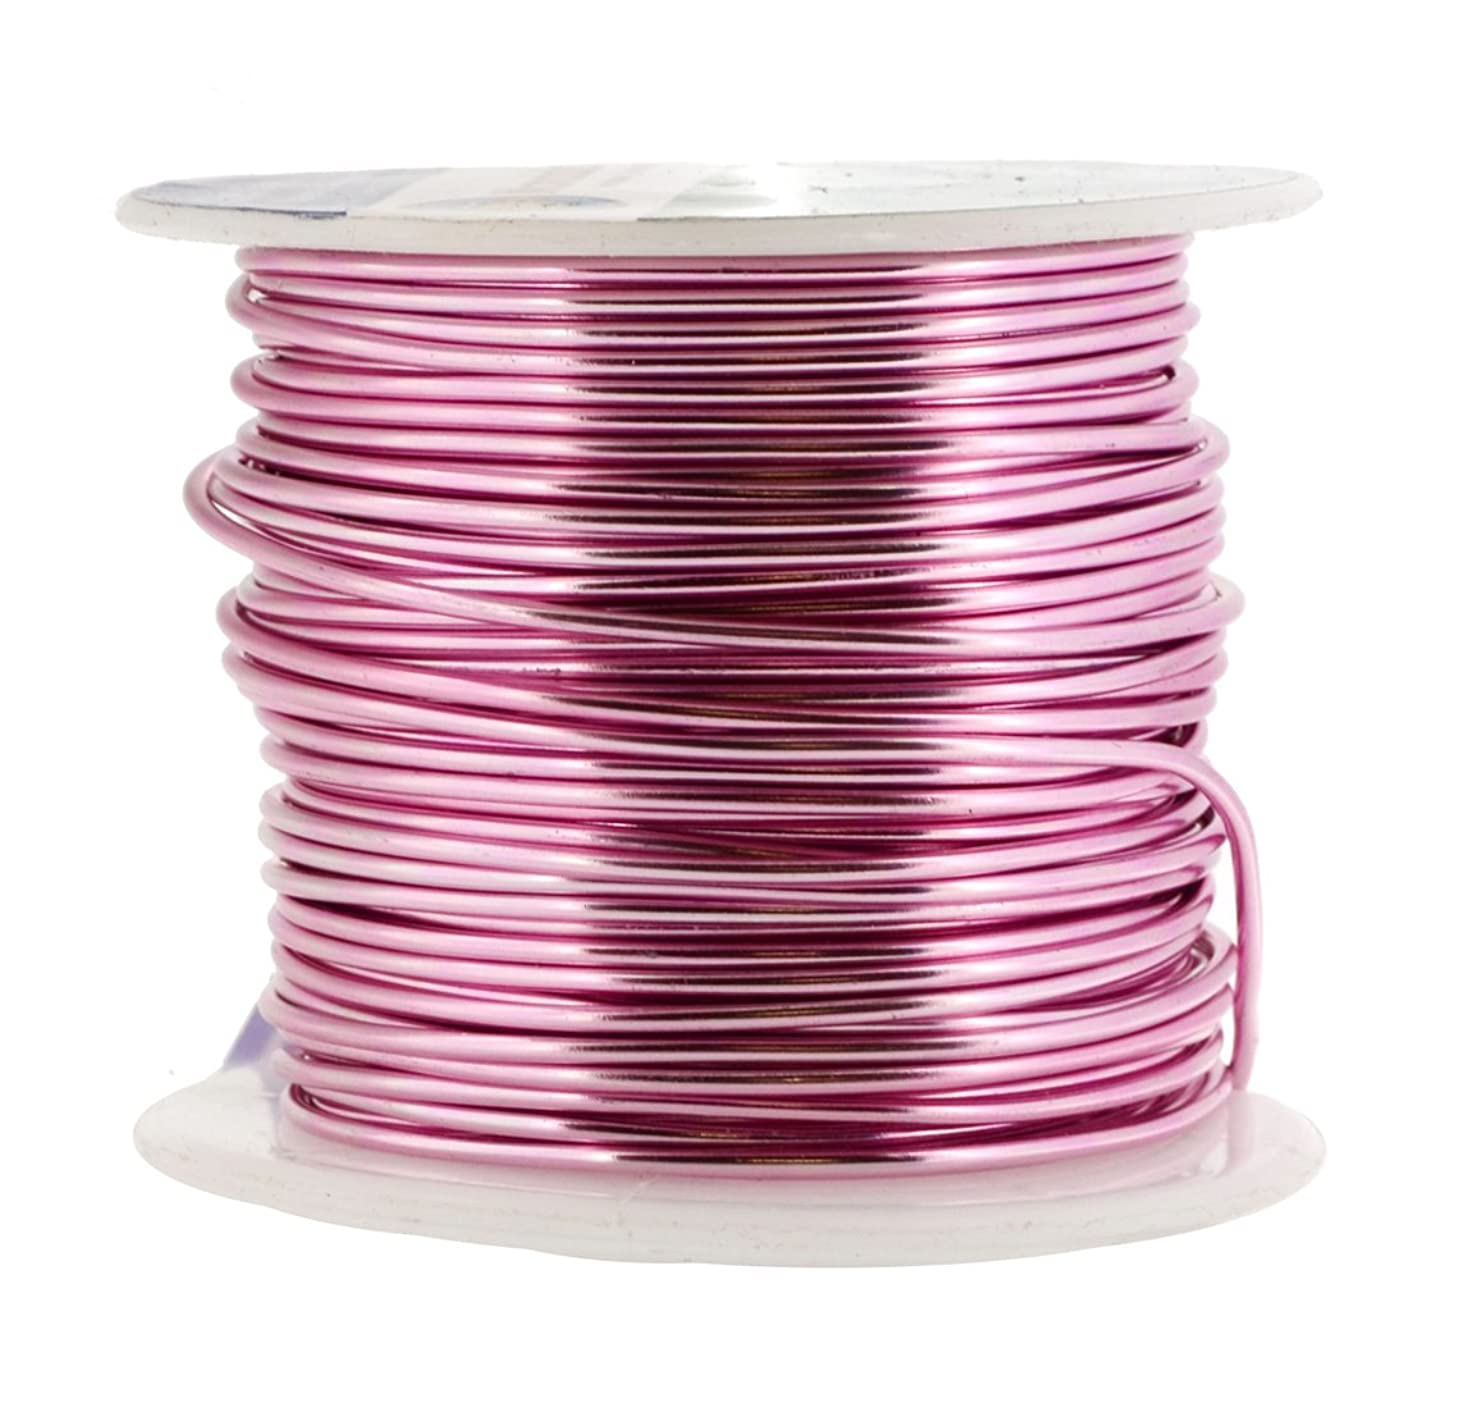 Mandala Crafts Anodized Aluminum Wire for Sculpting, Armature, Jewelry Making, Gem Metal Wrap, Garden, Colored and Soft, 1 Roll(16 Gauge, Pink)